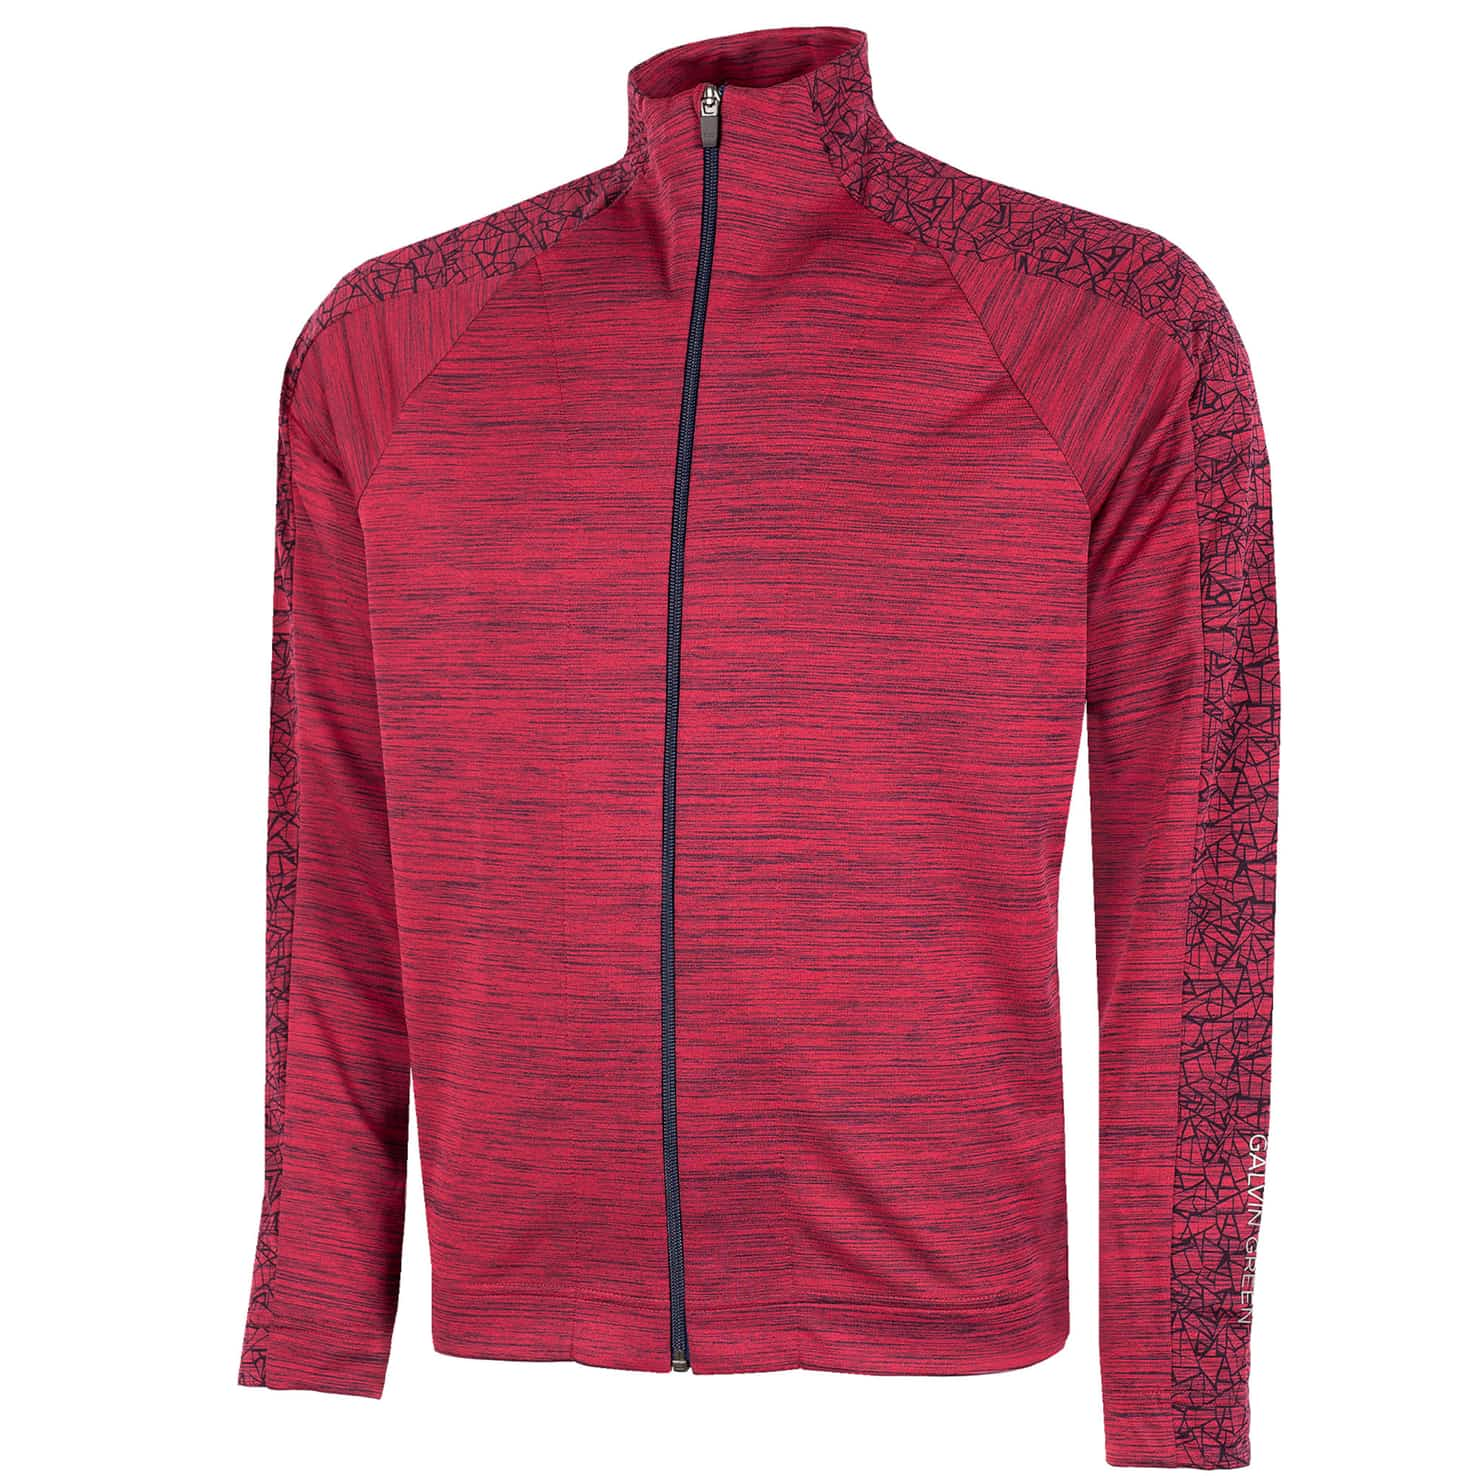 Declan Insula Full Zip Jacket Barberry - SS20